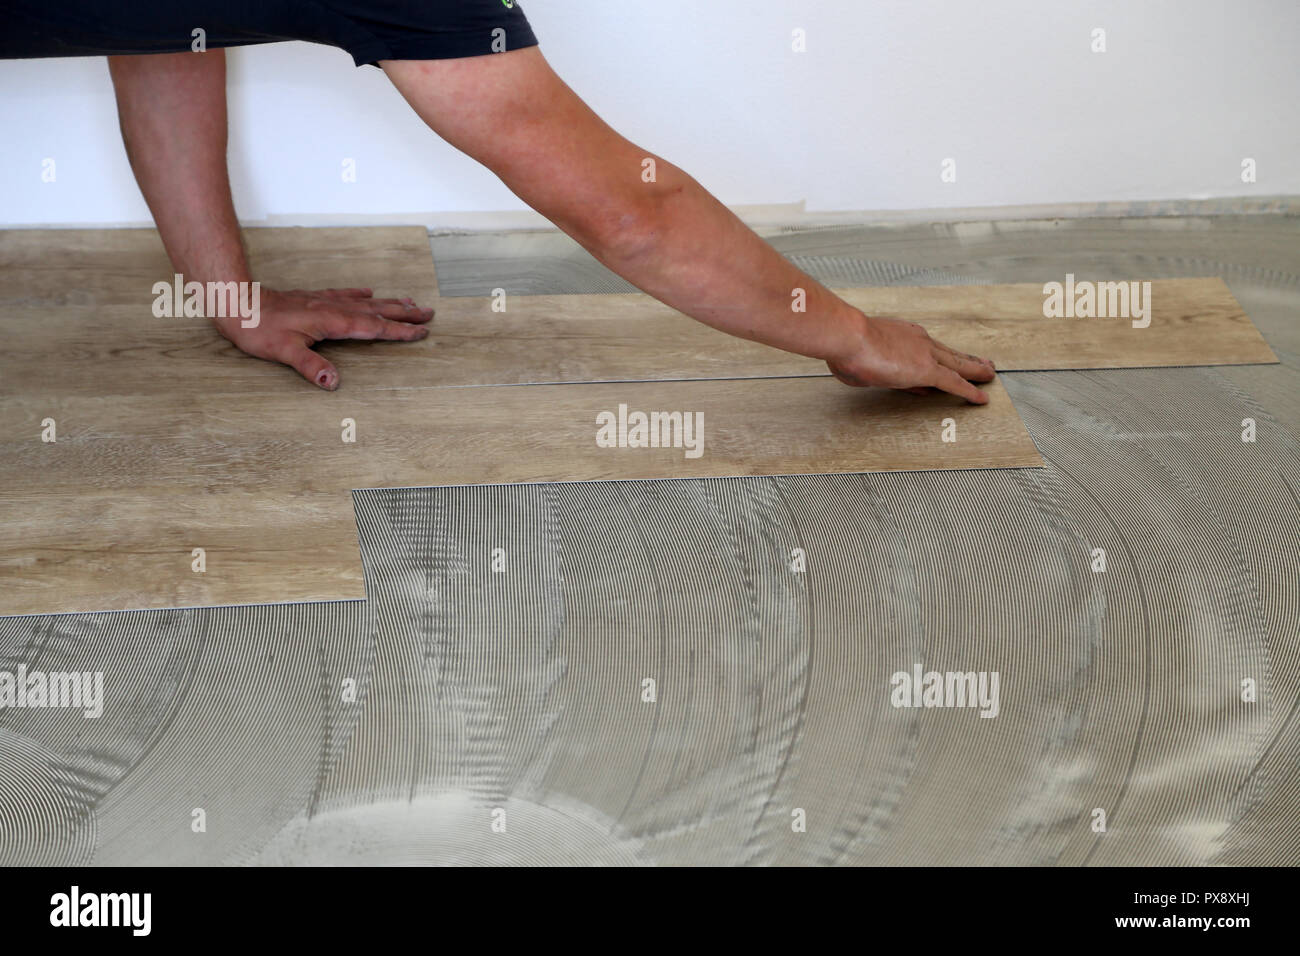 Installing Vinyl Tile Worker Installing New Vinyl Tile Floor Stock Photo 222701966 Alamy